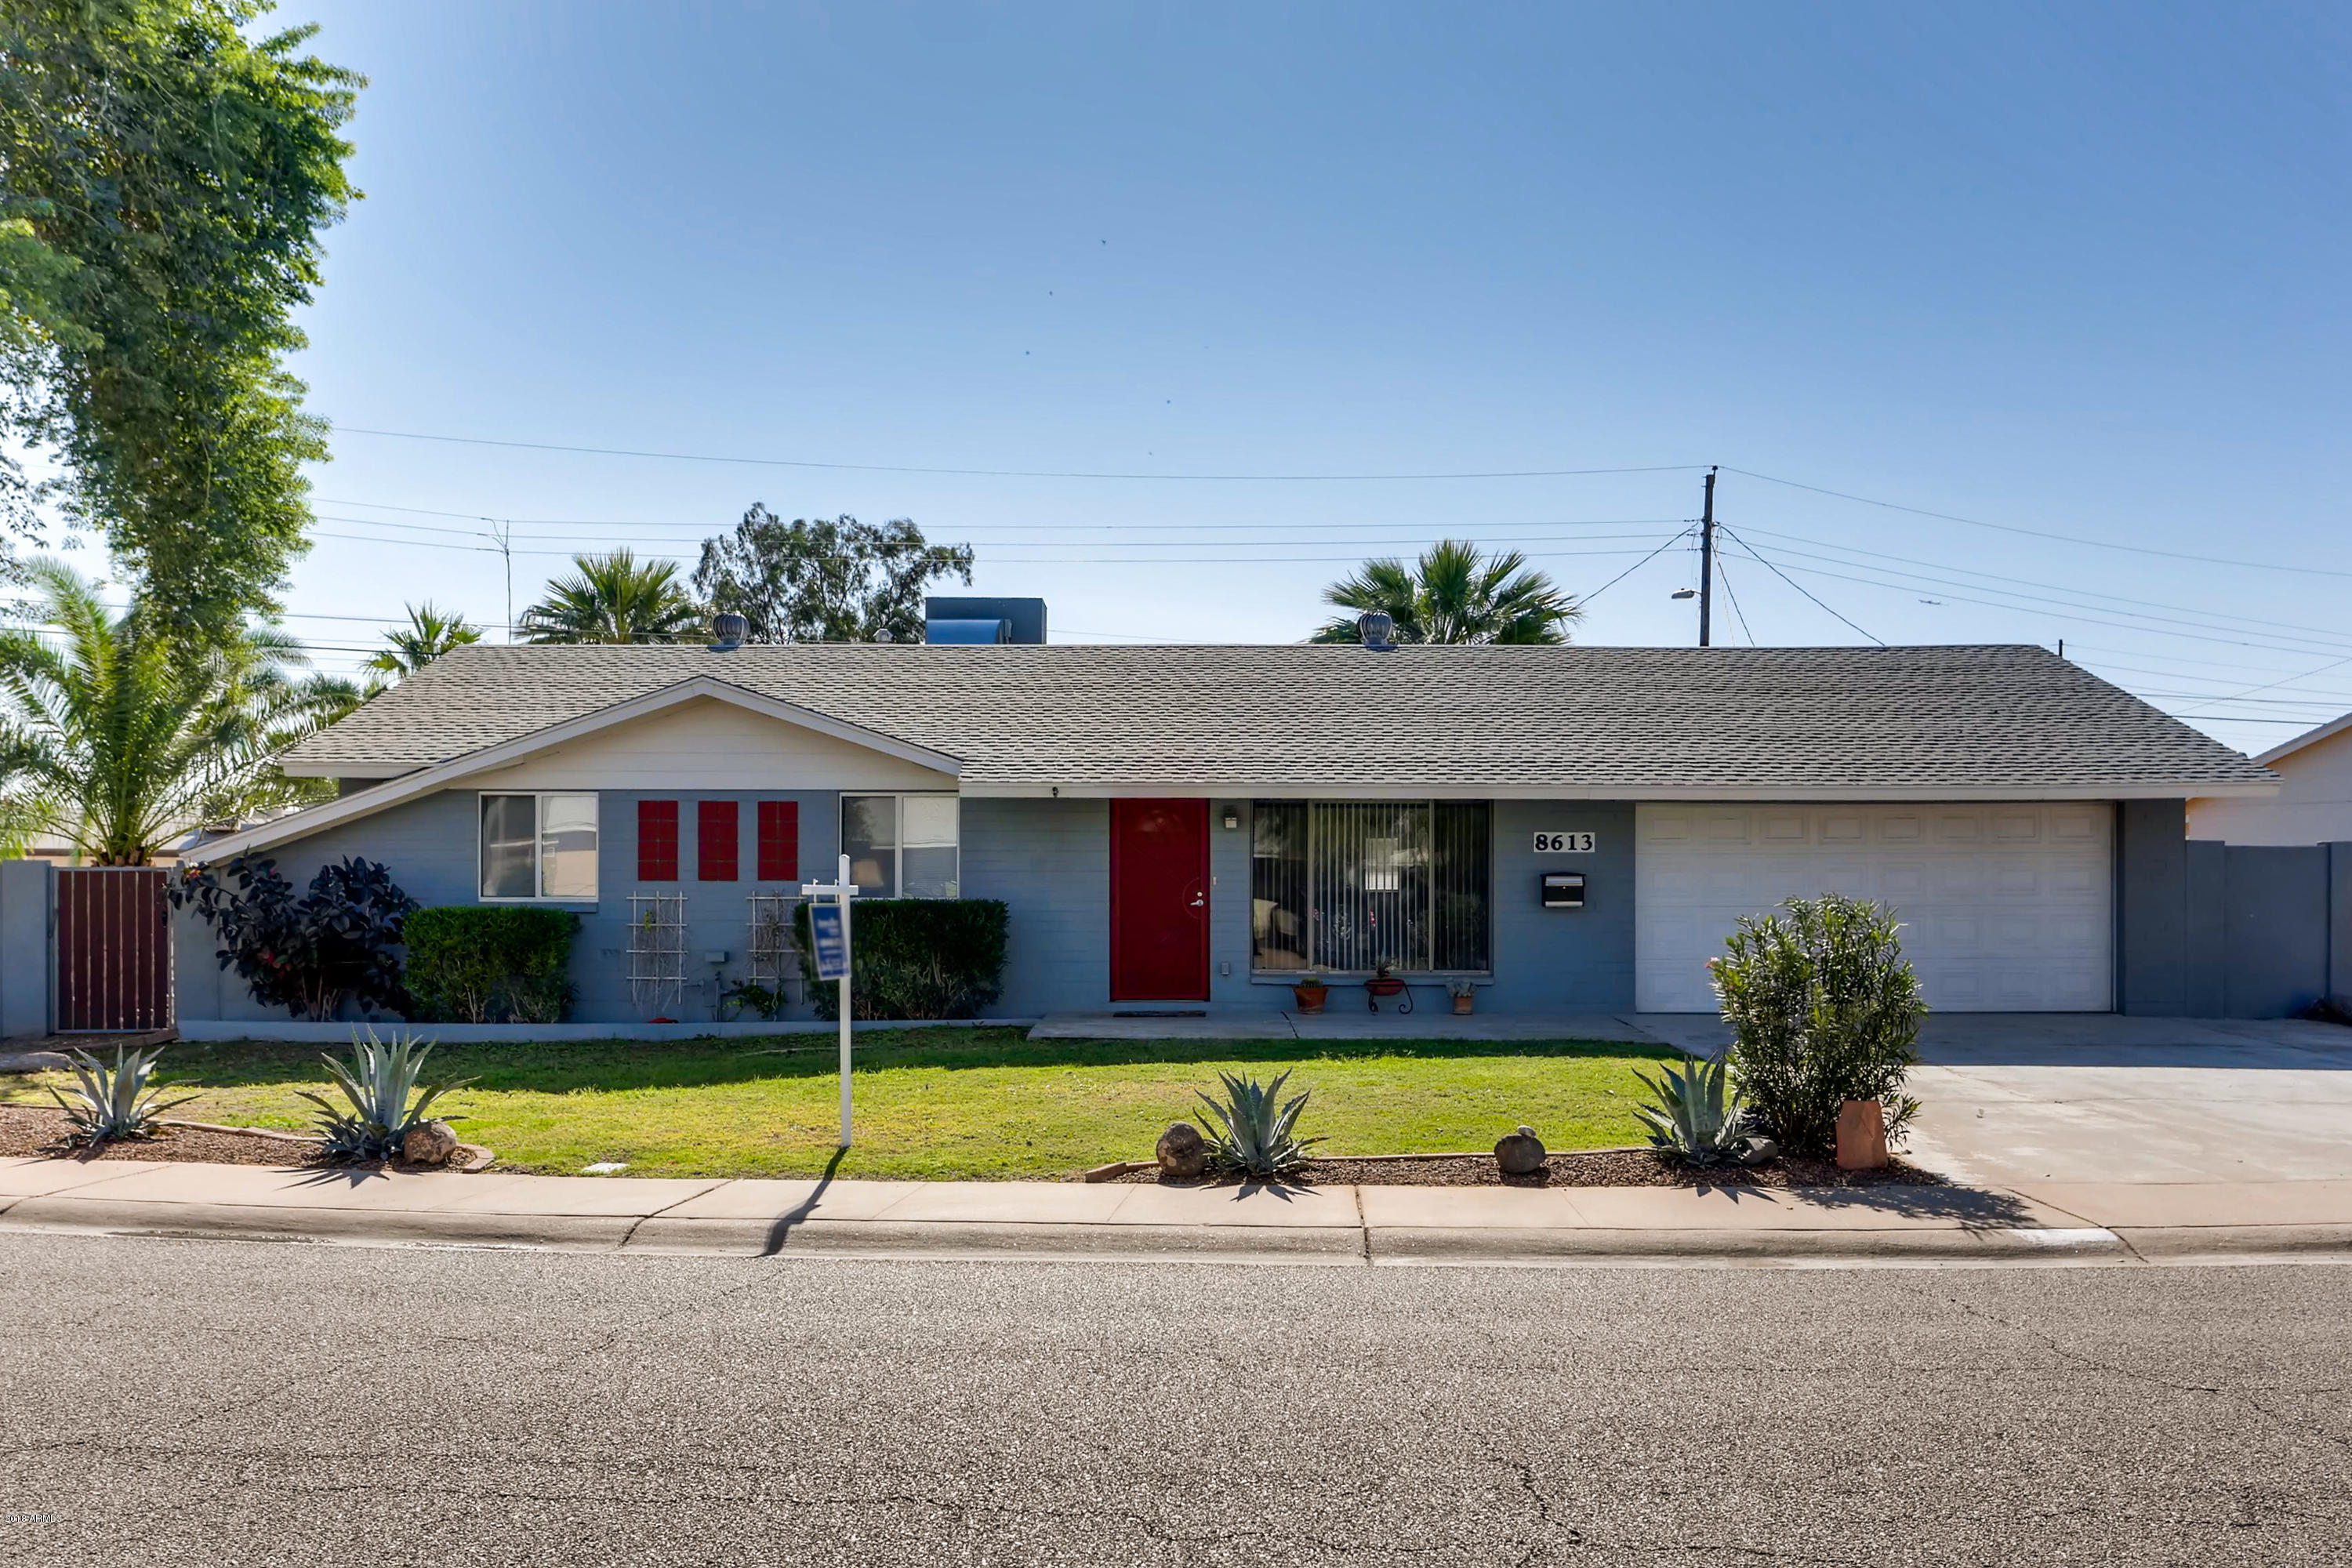 8613 E GRANADA Road, Scottsdale, Arizona